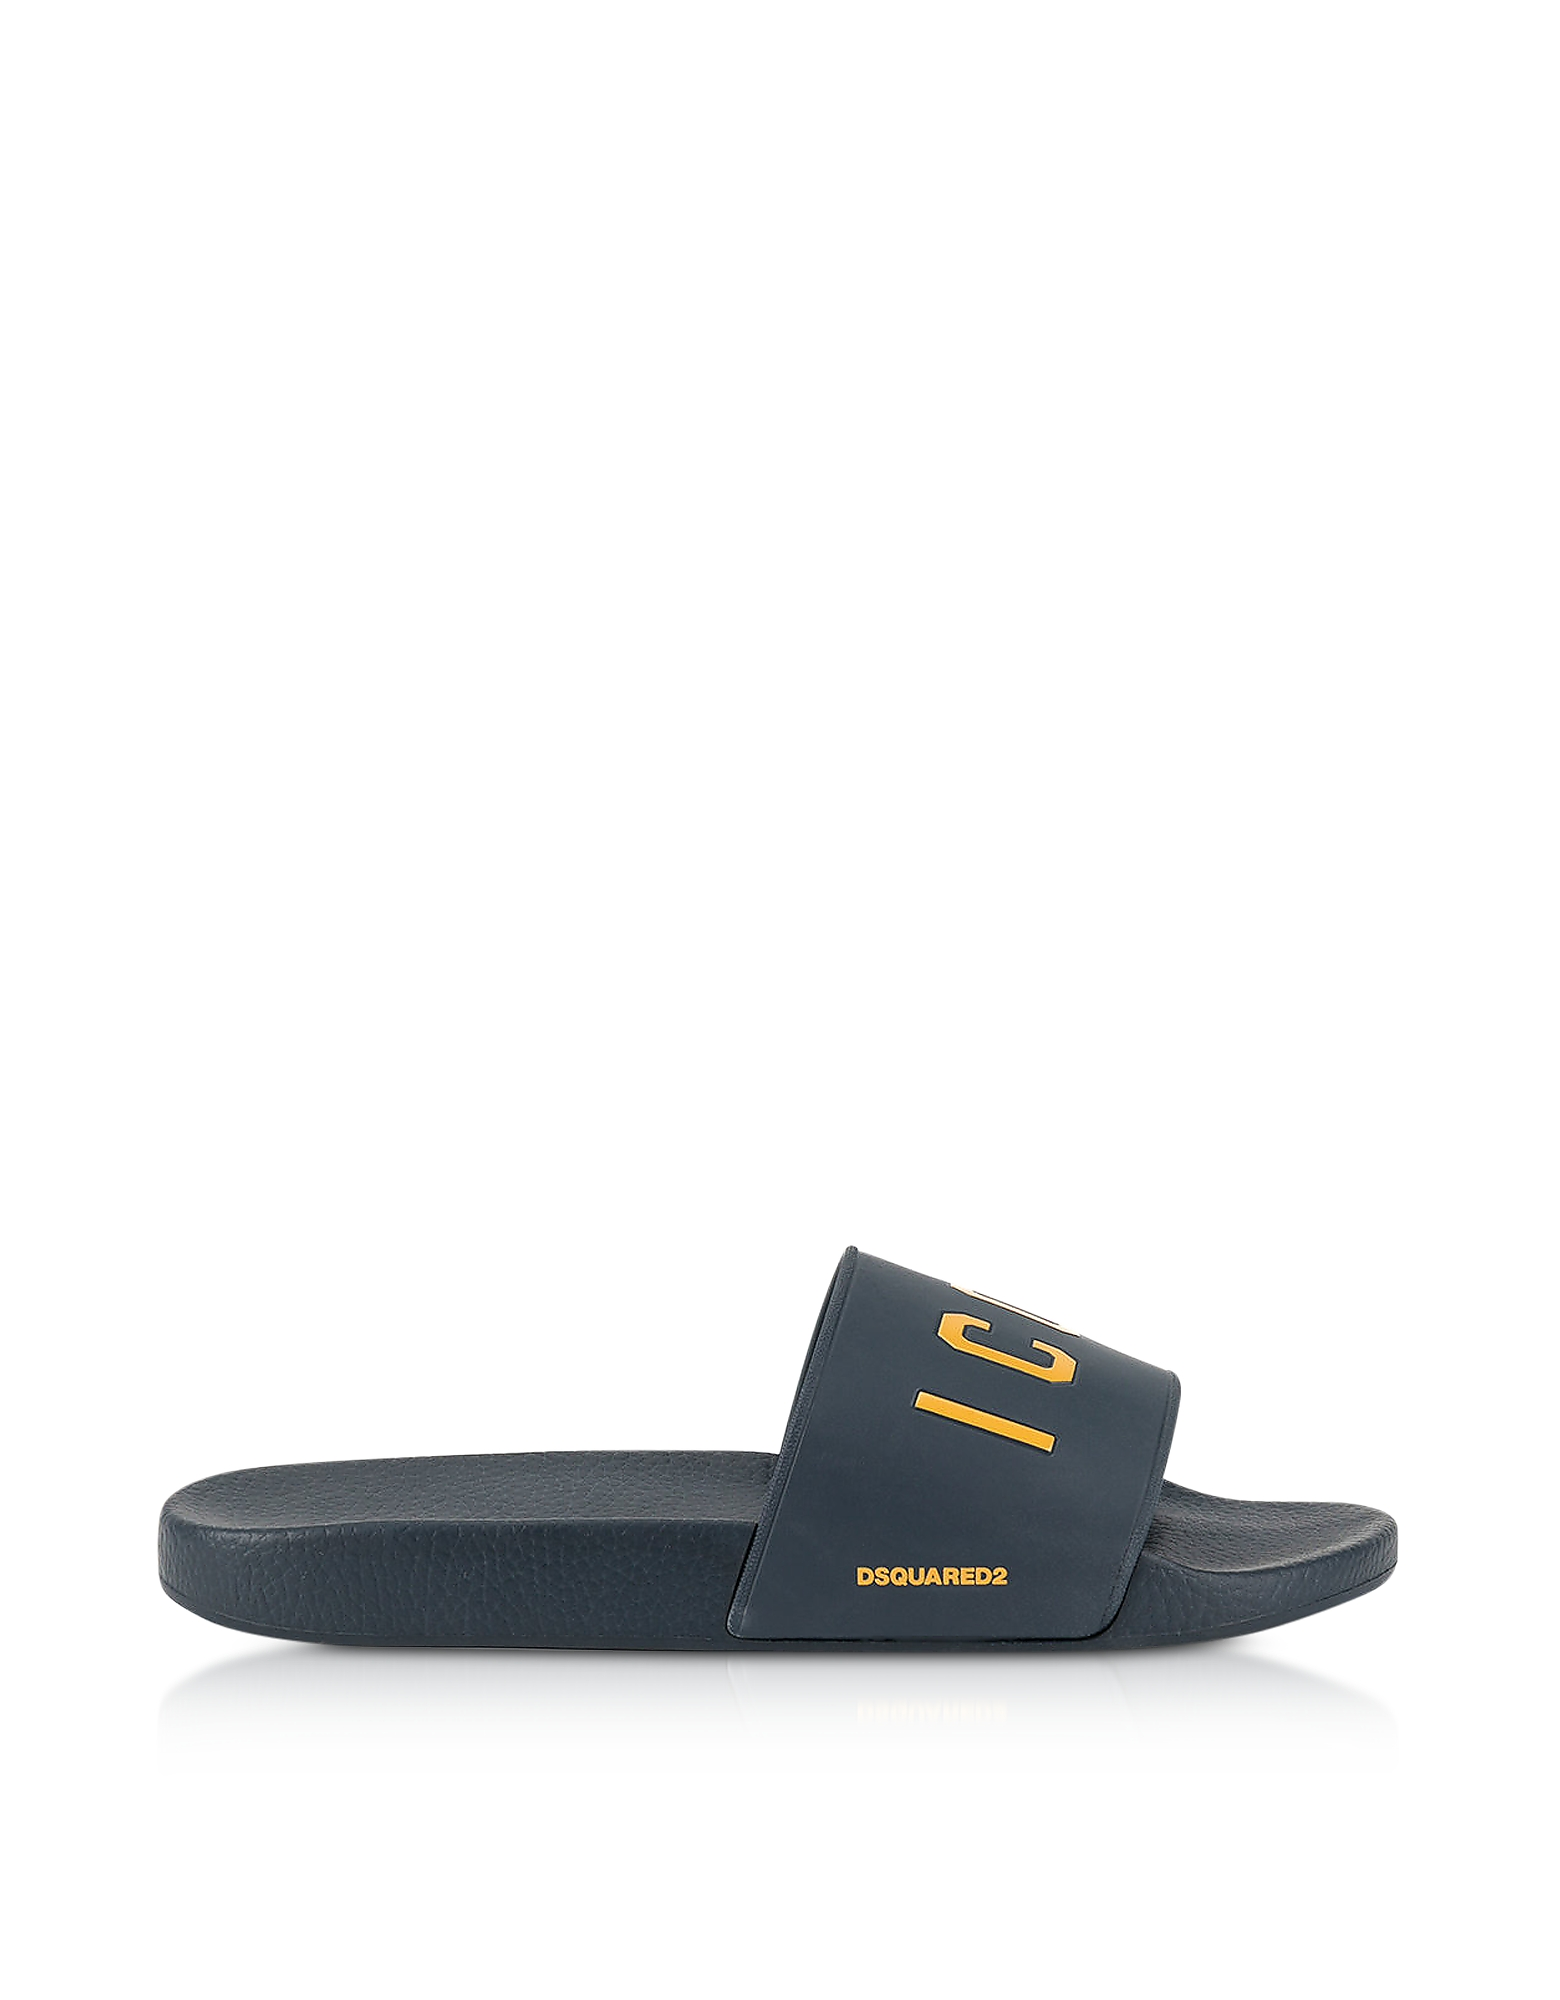 DSquared2 Shoes, Icon Navy Blue Rubber Slide Sandals